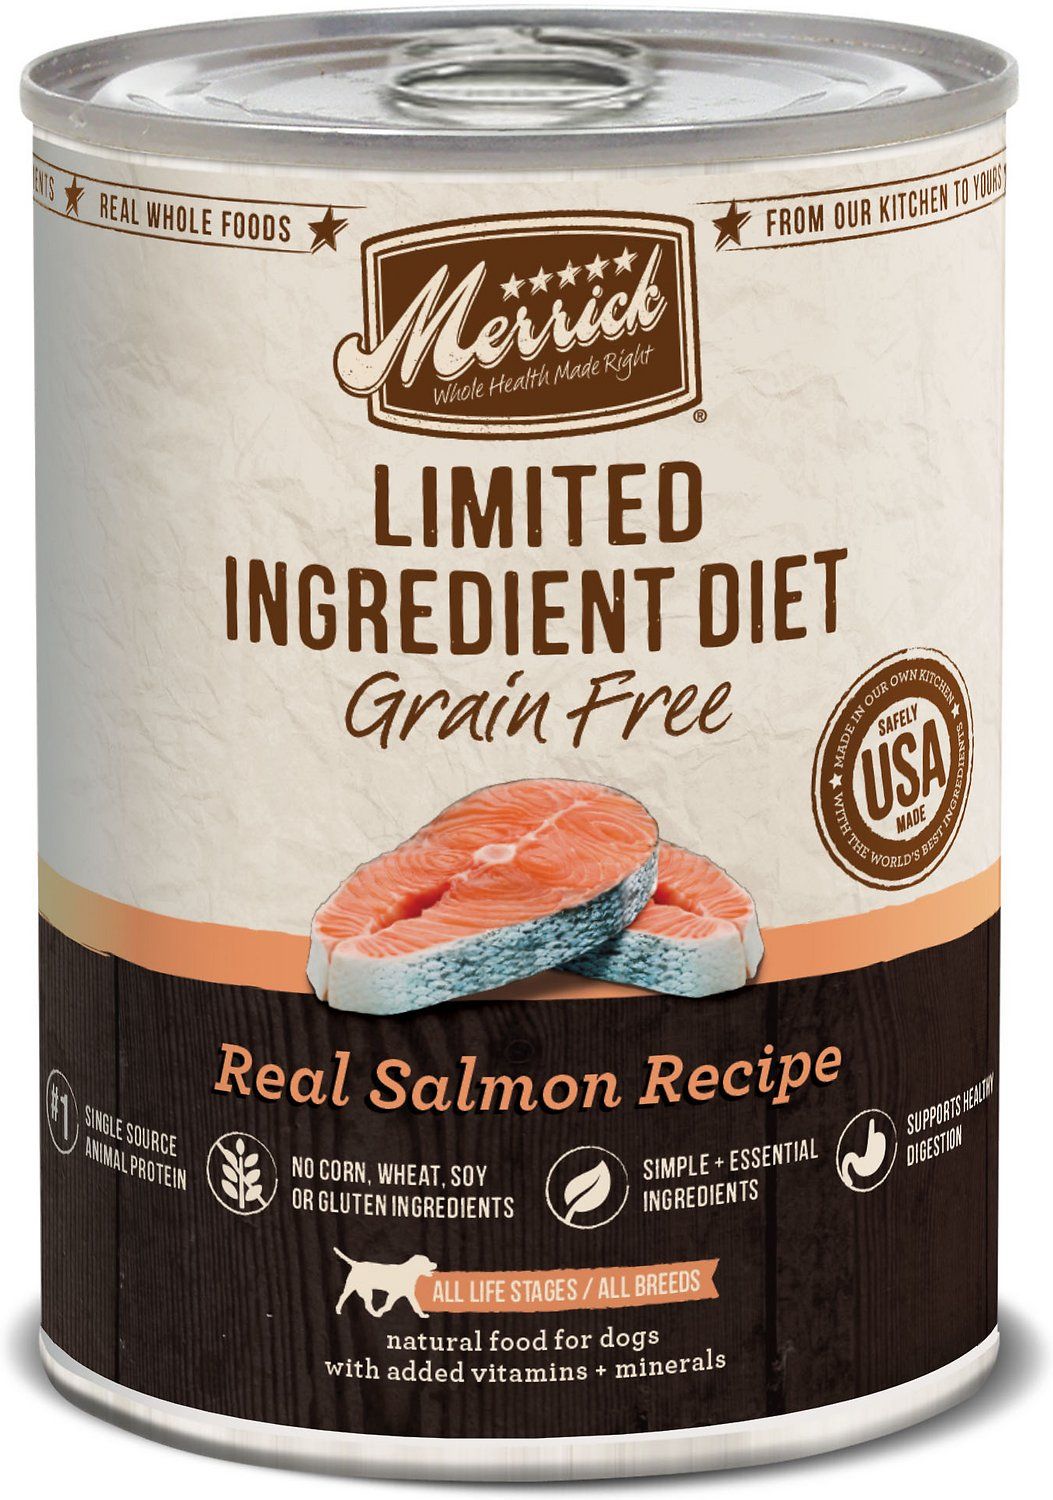 Merrick Limited Ingredient Diet Grain-Free Real Salmon Recipe Canned Dog Food, 12.7-oz